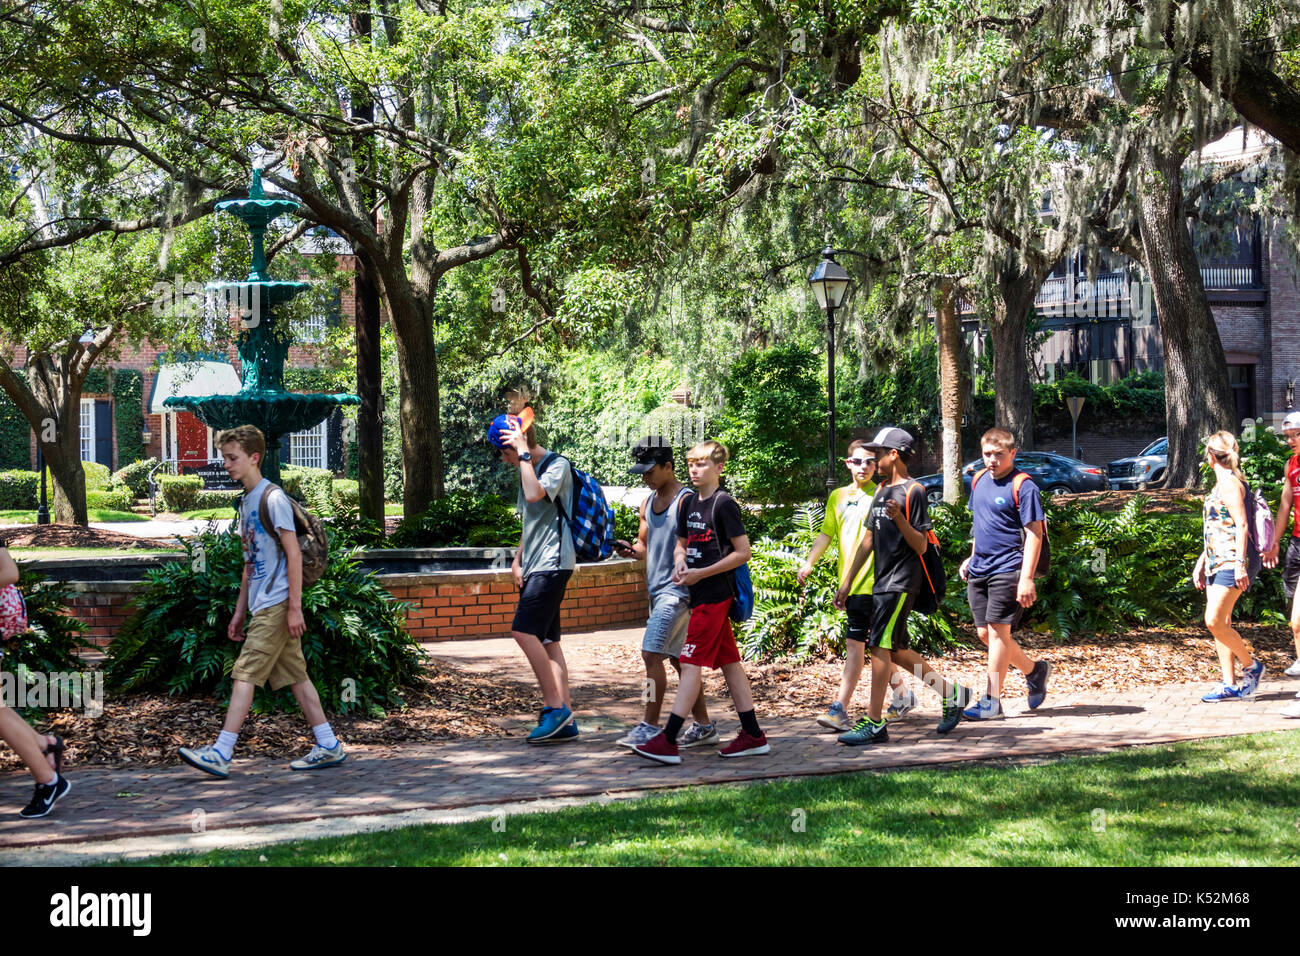 Savannah Georgia historic district Lafayette Square students walking park - Stock Image